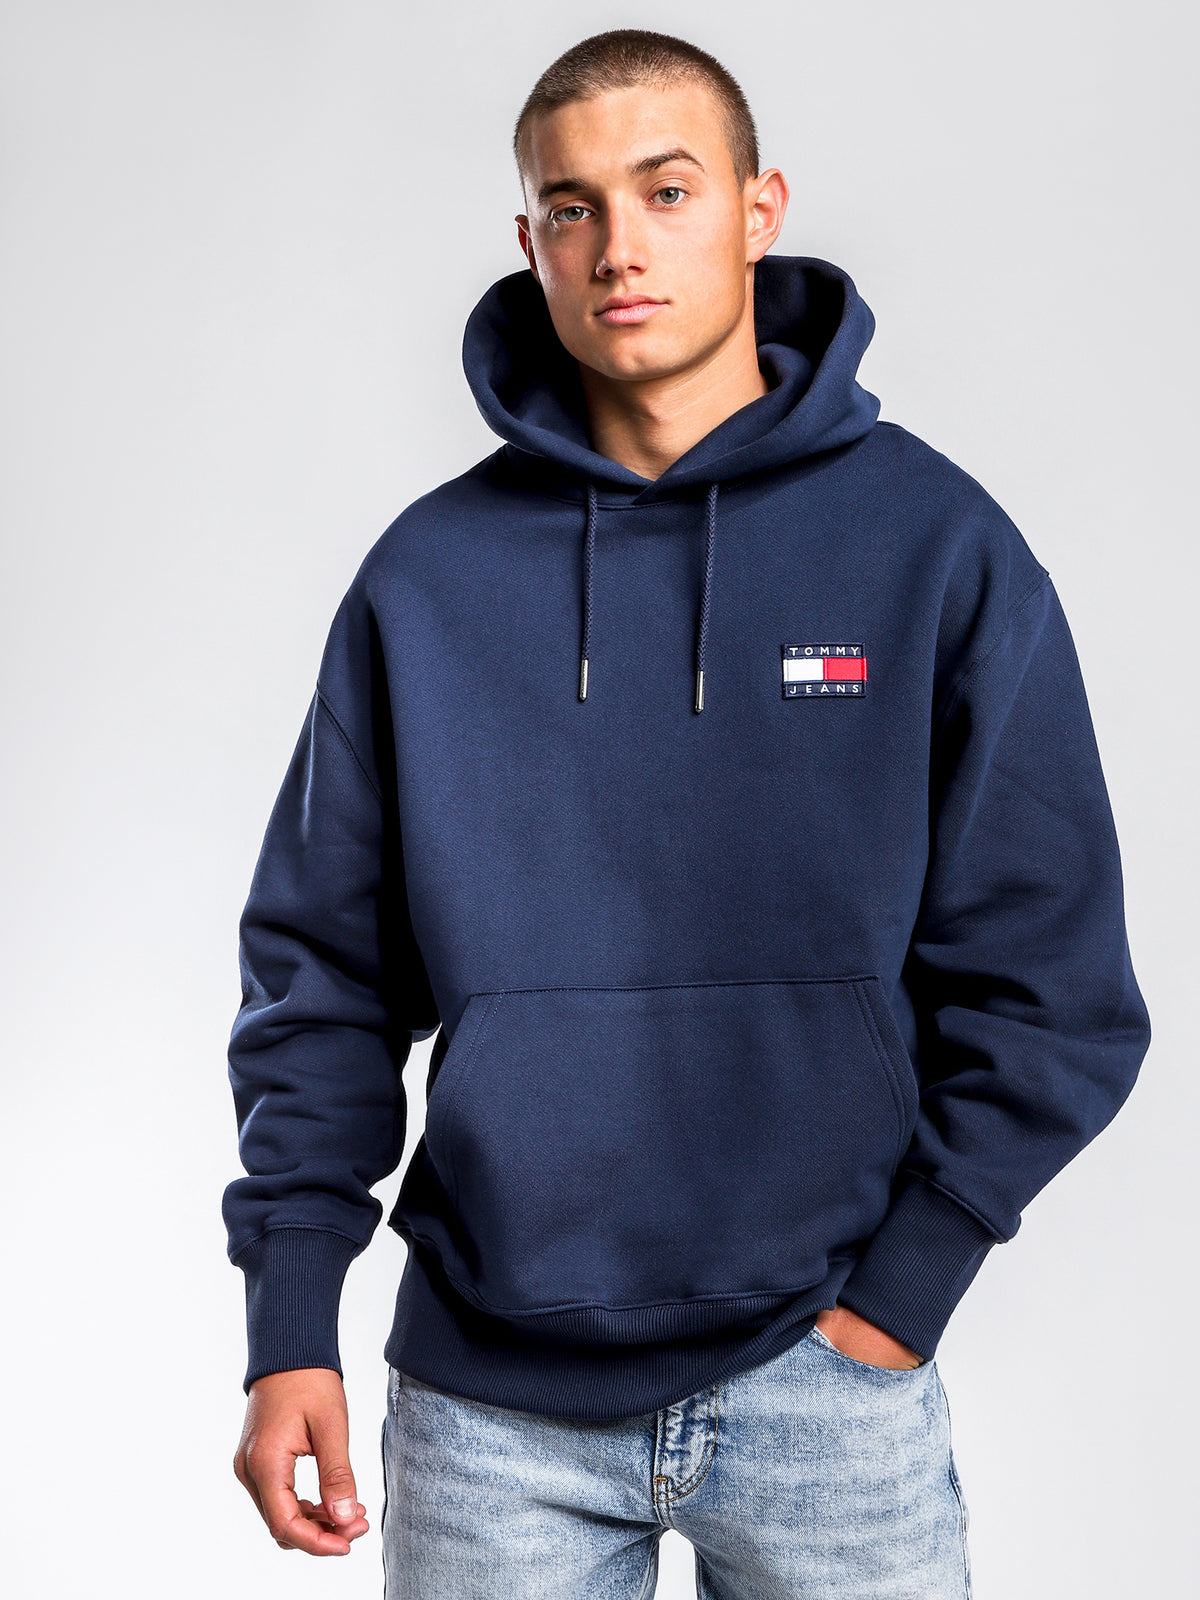 Badge Hoodie in Navy